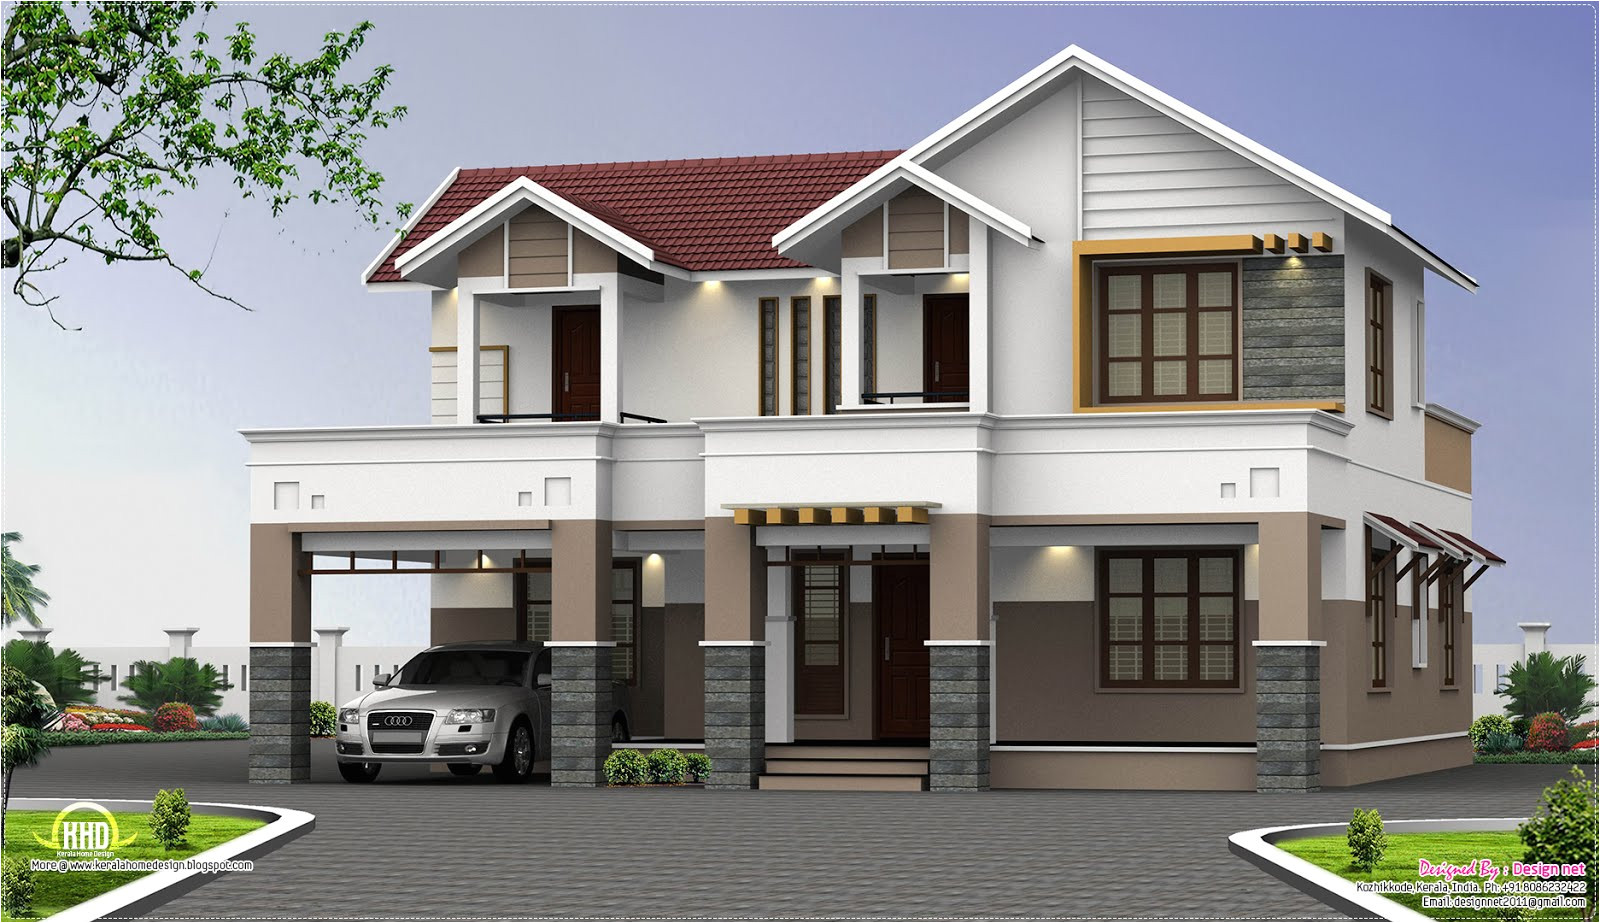 Two Story Home Plans Two Story House Plans Kerala Perspective Series House